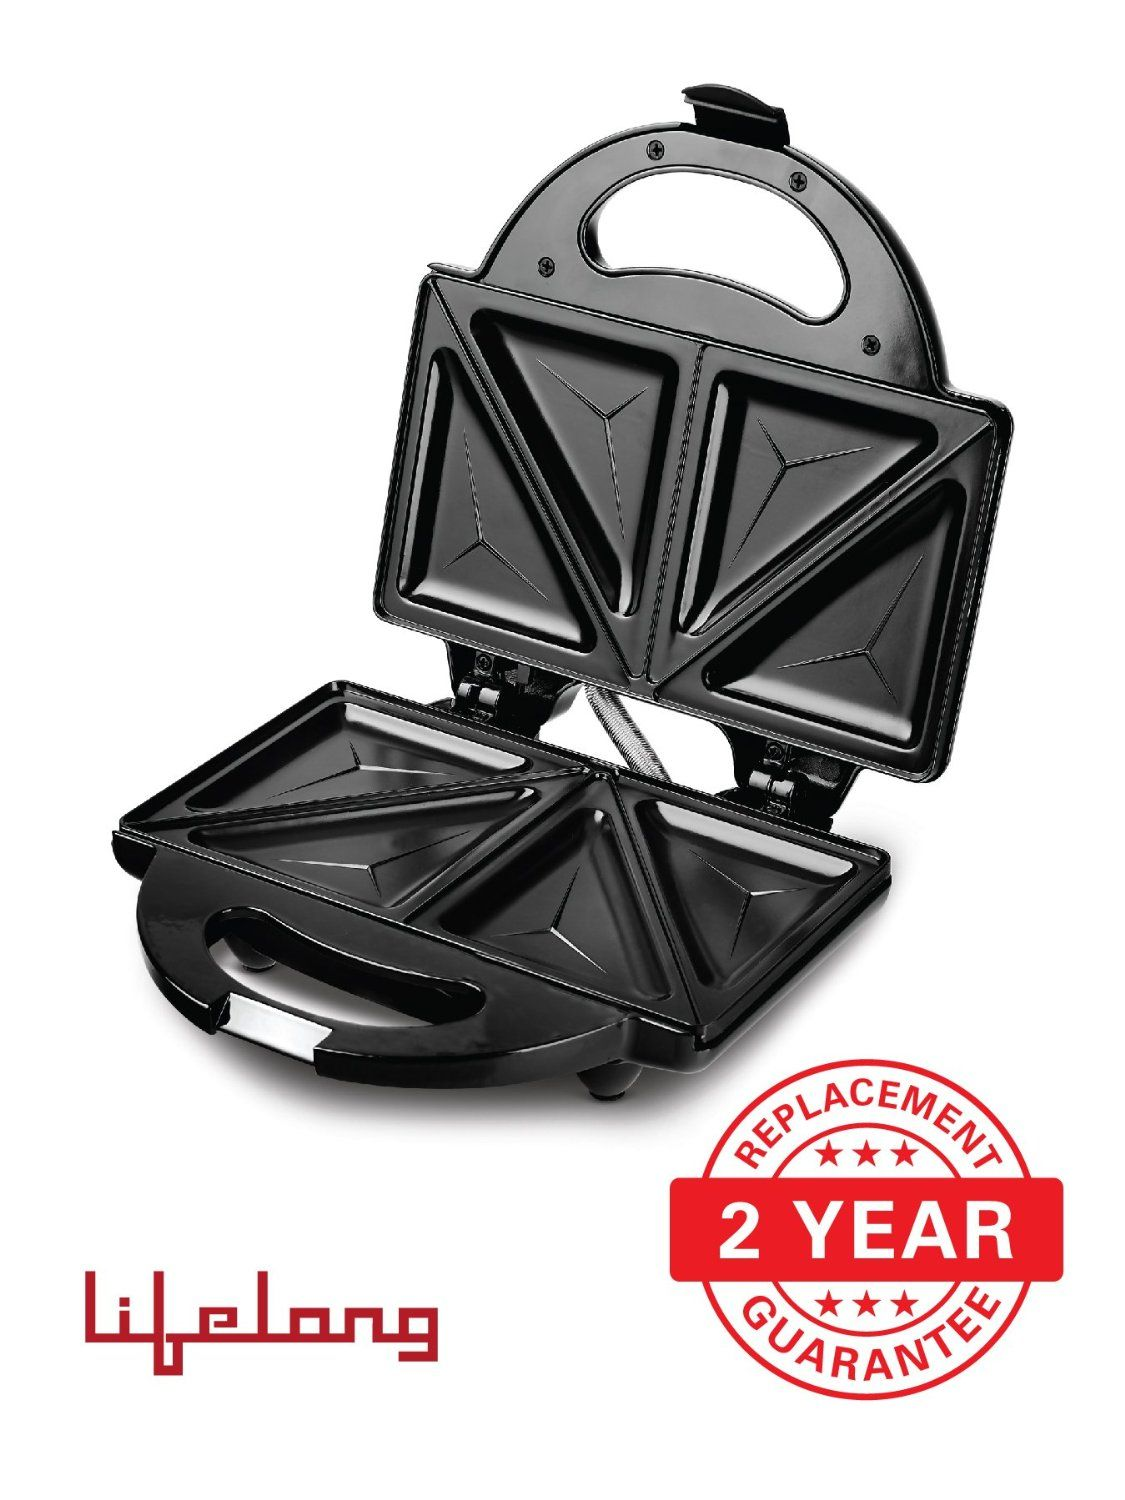 Lifelong 116 Triangle Plate Toast Sandwich Maker Review ...